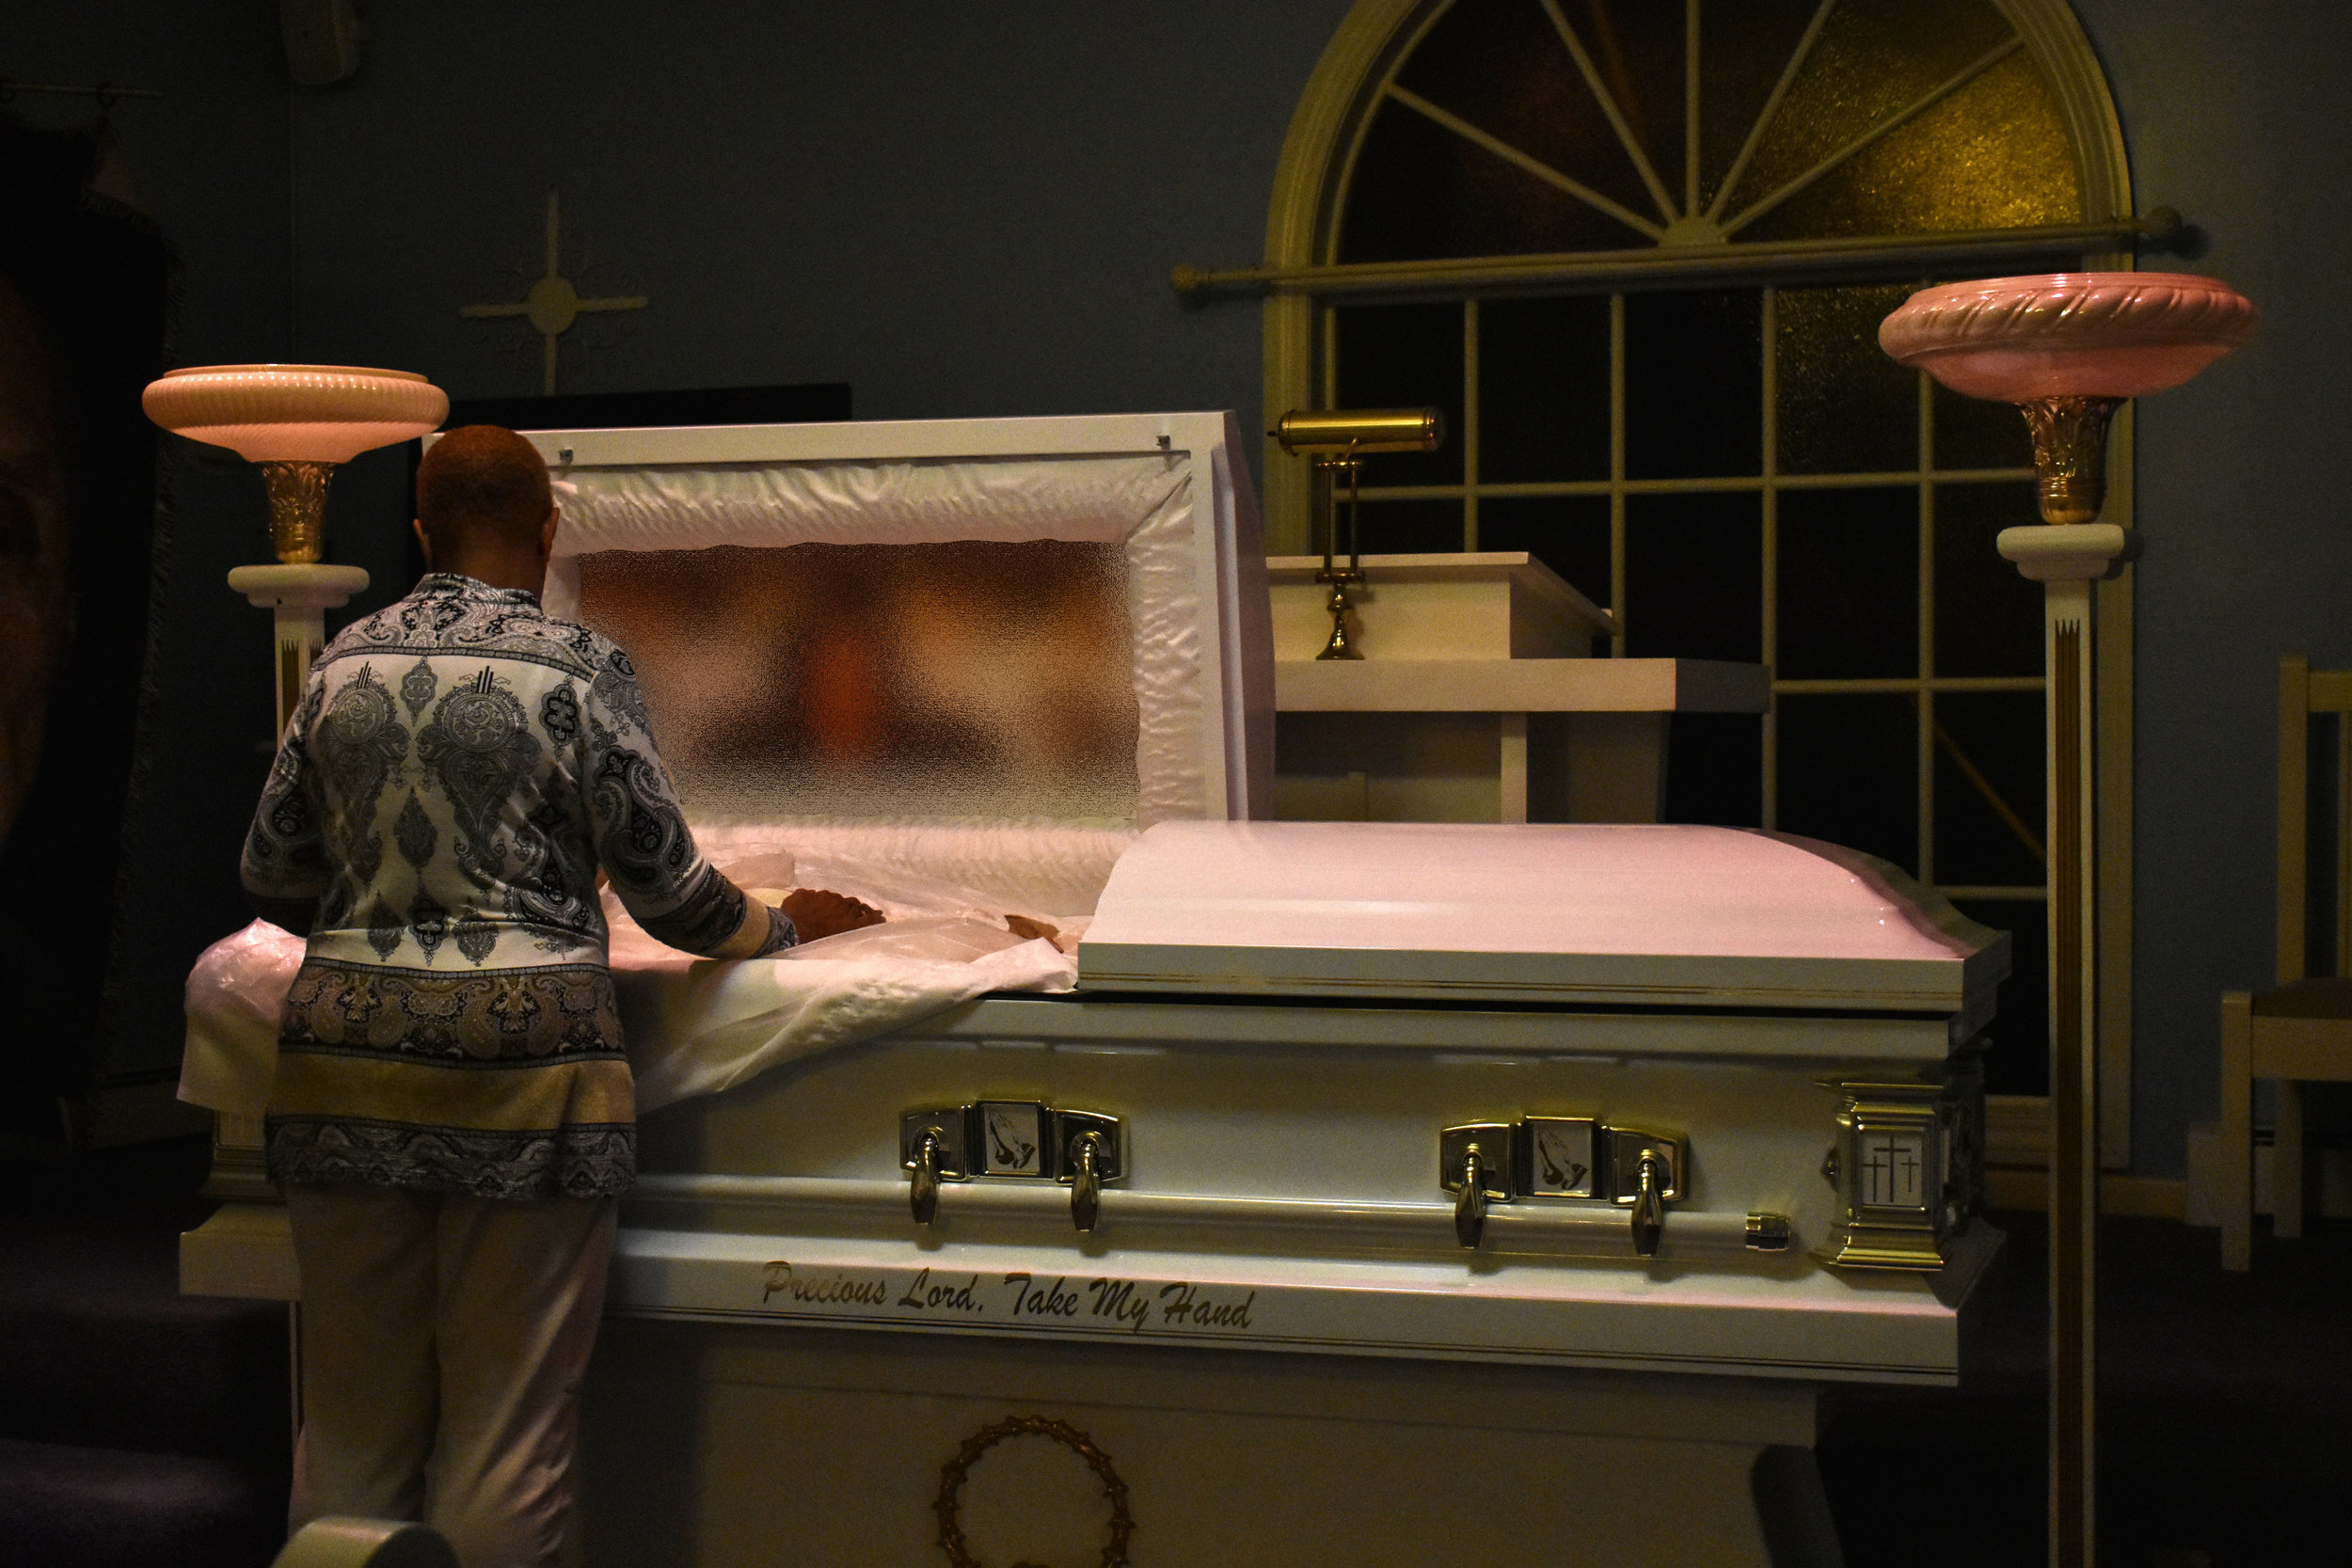 Funeral director Donita Greene views a decedent ahead of a visitation at Greene Funeral Home in Alexandria, Va., Thursday, Oct. 18, 2018. This image has been partially blurred to protect the identity of the deceased. (Lindsey Leake/American University)